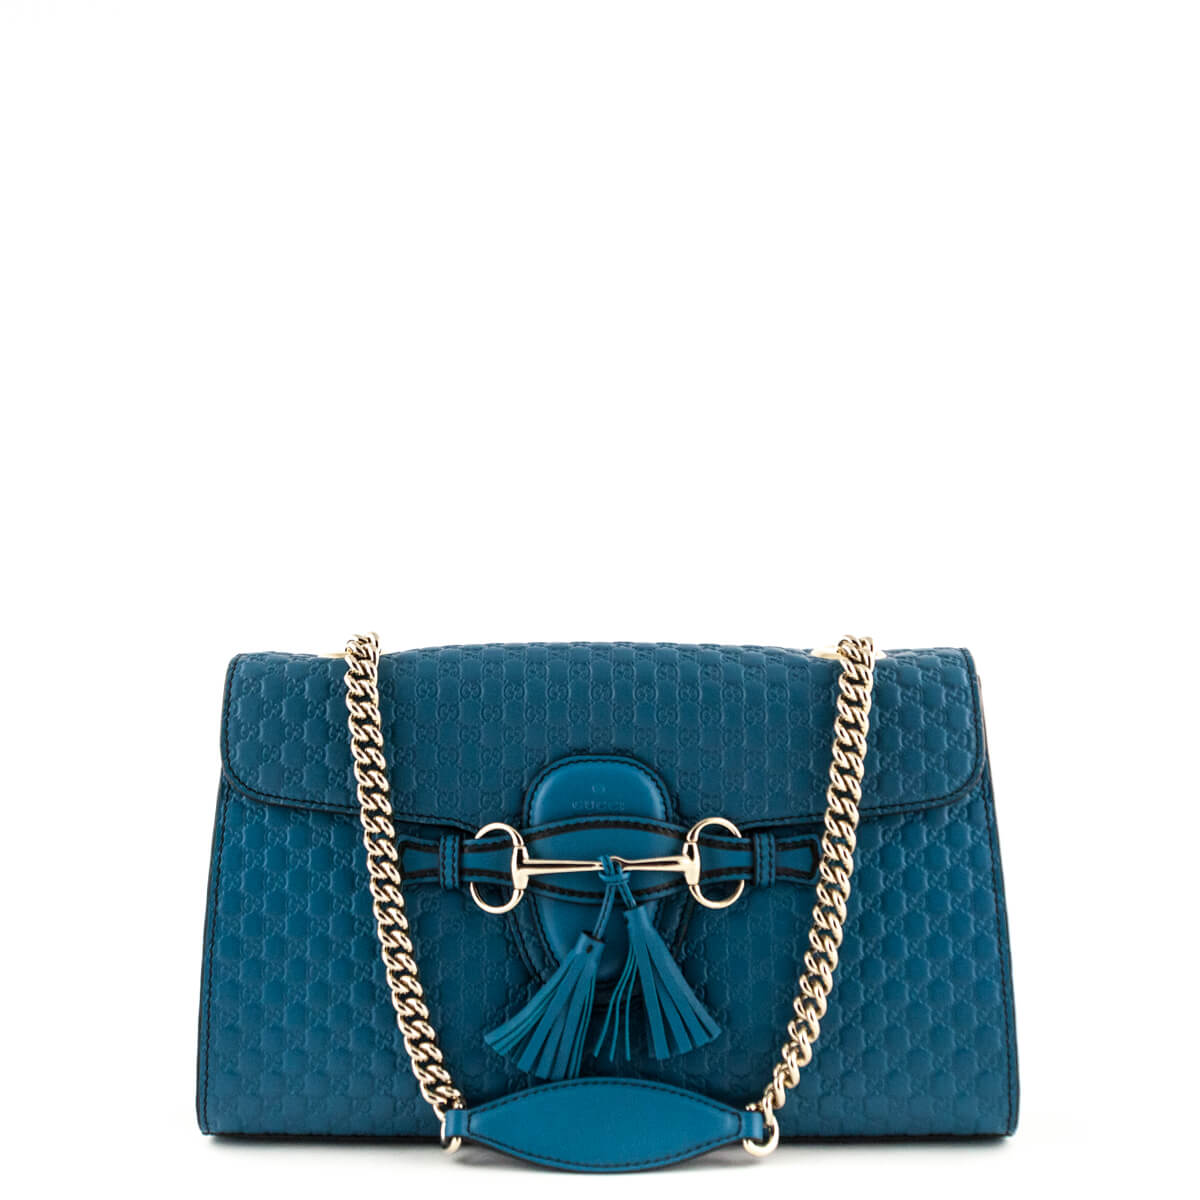 e2923008e8cd Gucci Peacock Blue Guccissima Emily Shoulder Bag - LOVE that BAG - Preowned  Authentic Designer Handbags ...